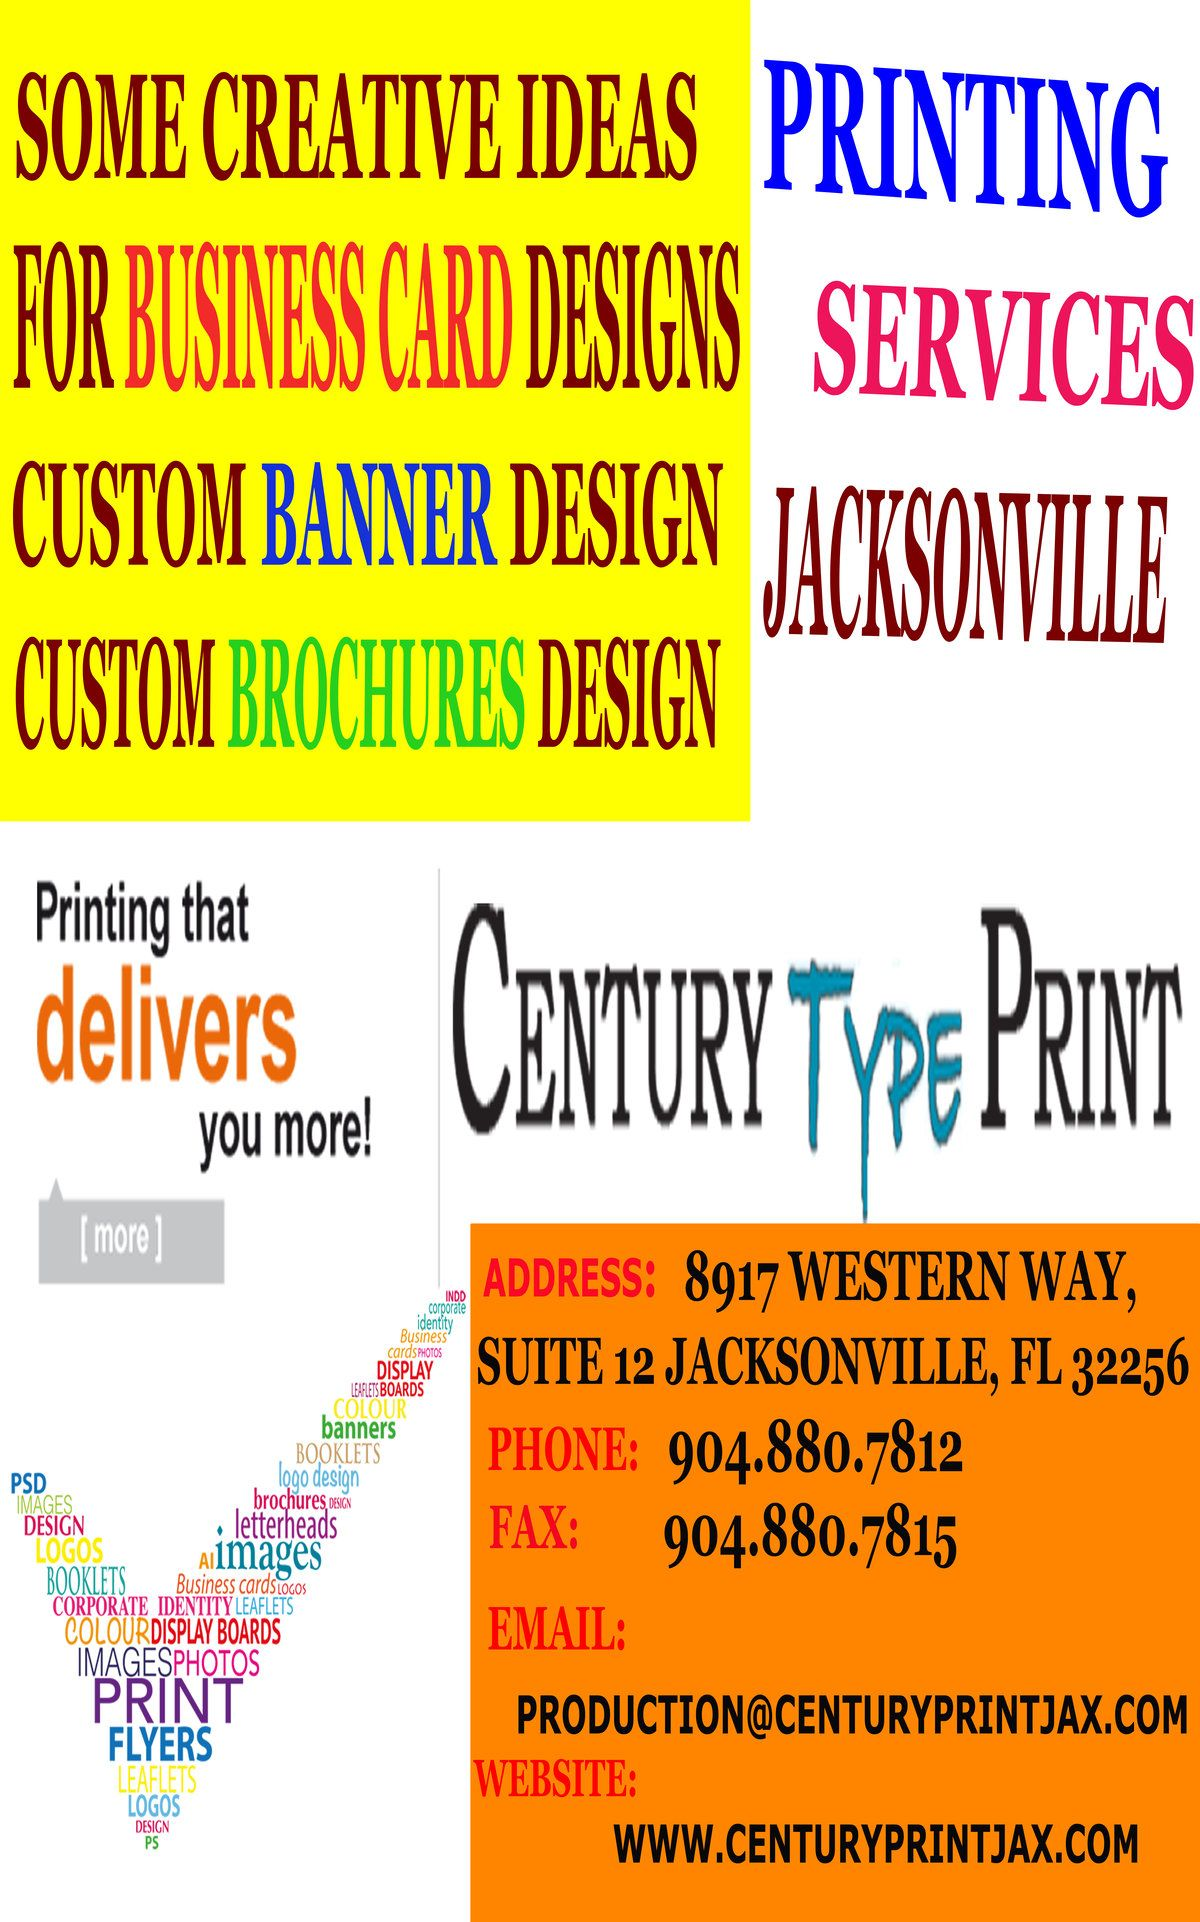 Century type print is committed to customers complete satisfaction whether your jacksonville printing requirements are small or large we want to be your printer of choice as a full service printer in reheart Choice Image